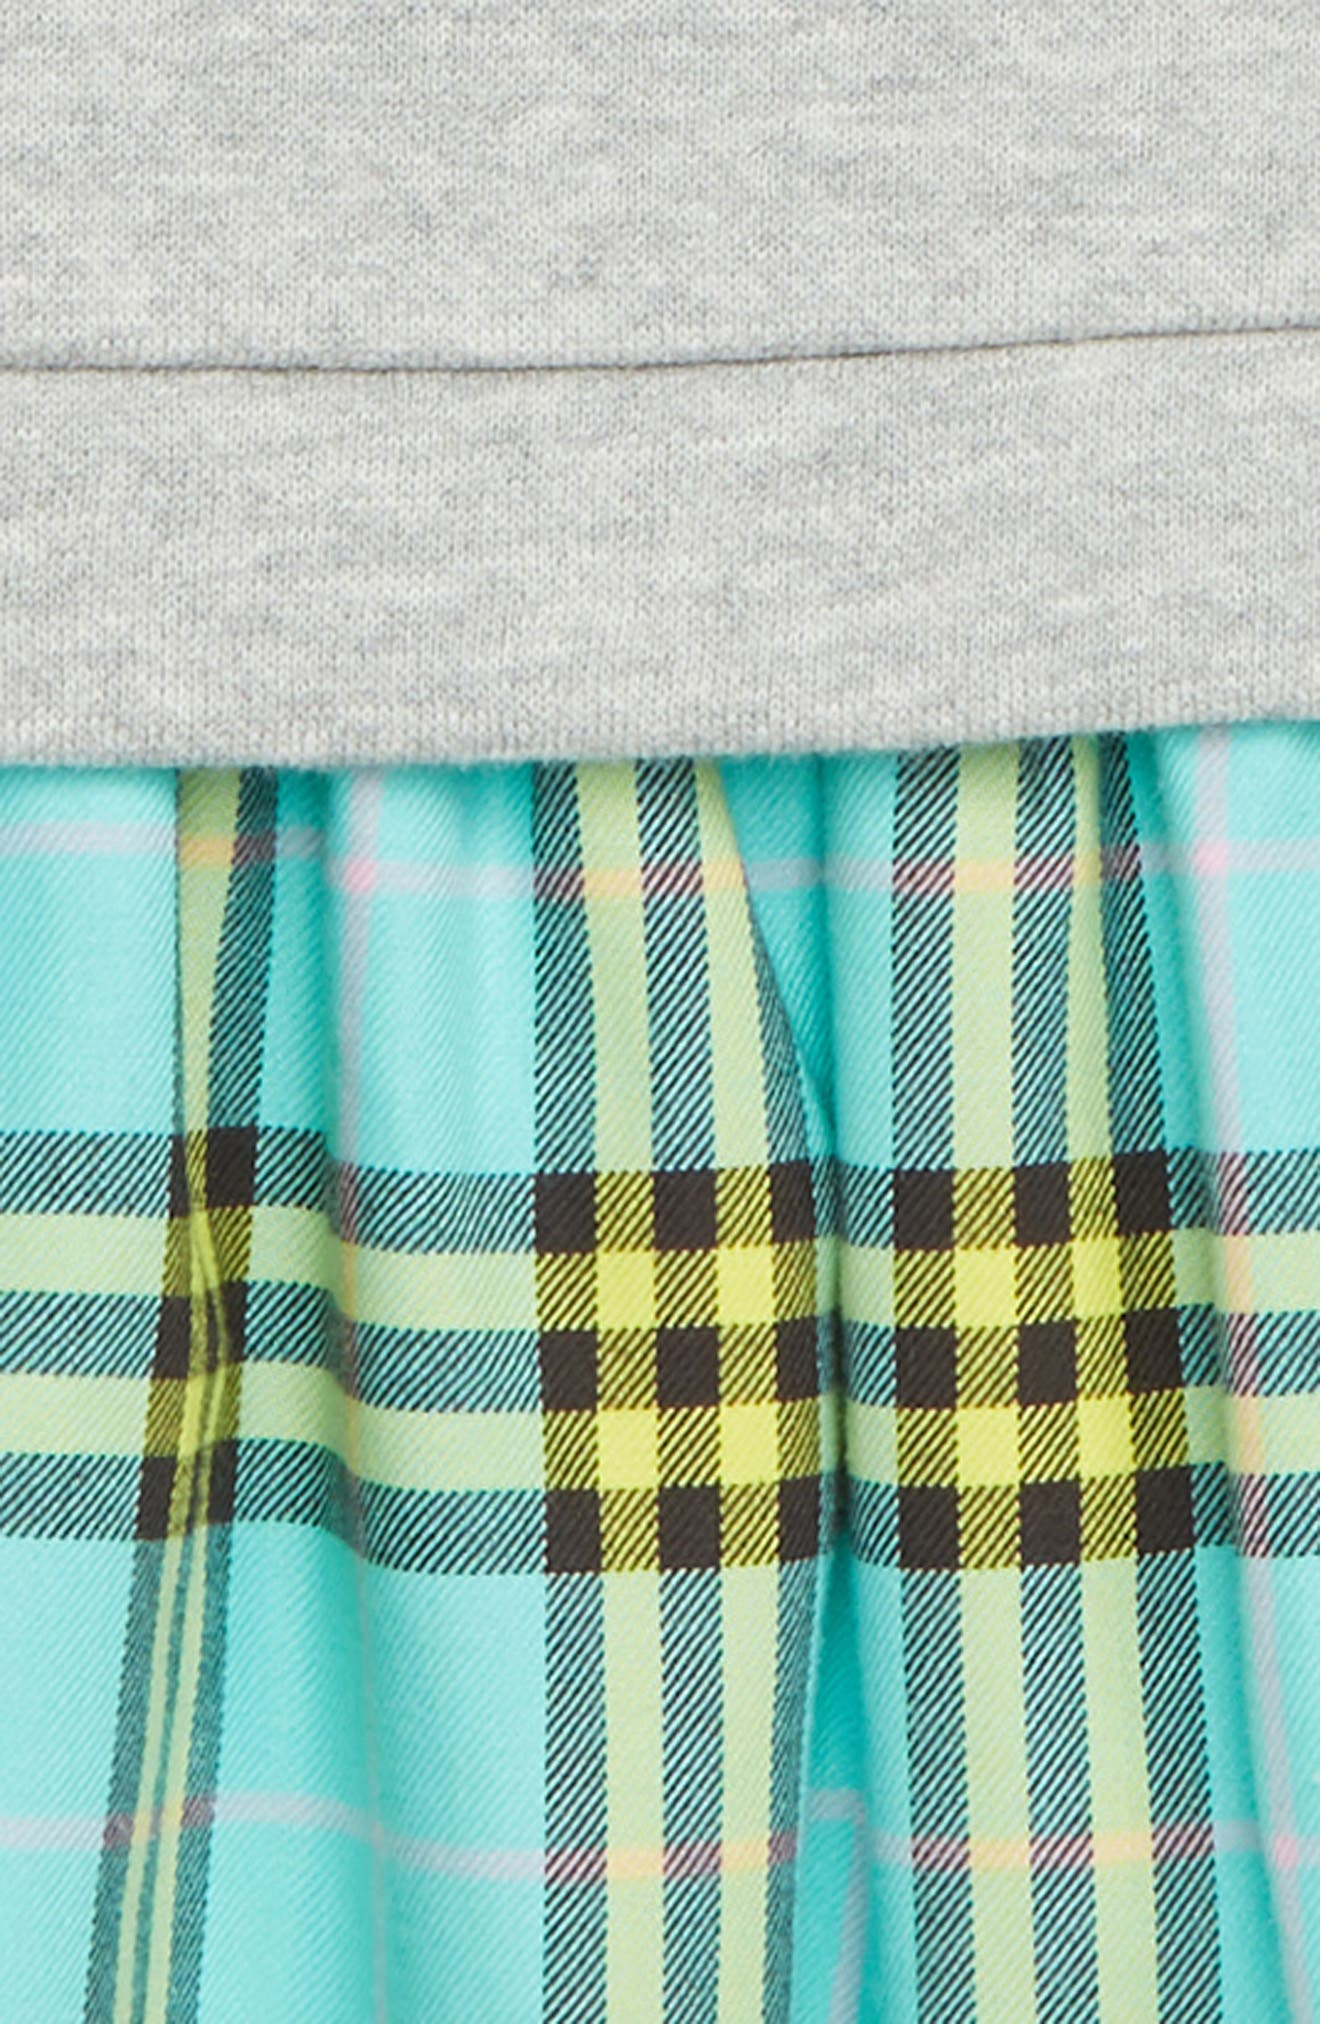 Check & Cotton Sweater Dress,                             Alternate thumbnail 3, color,                             BRIGHT TURQUOISE CHECK